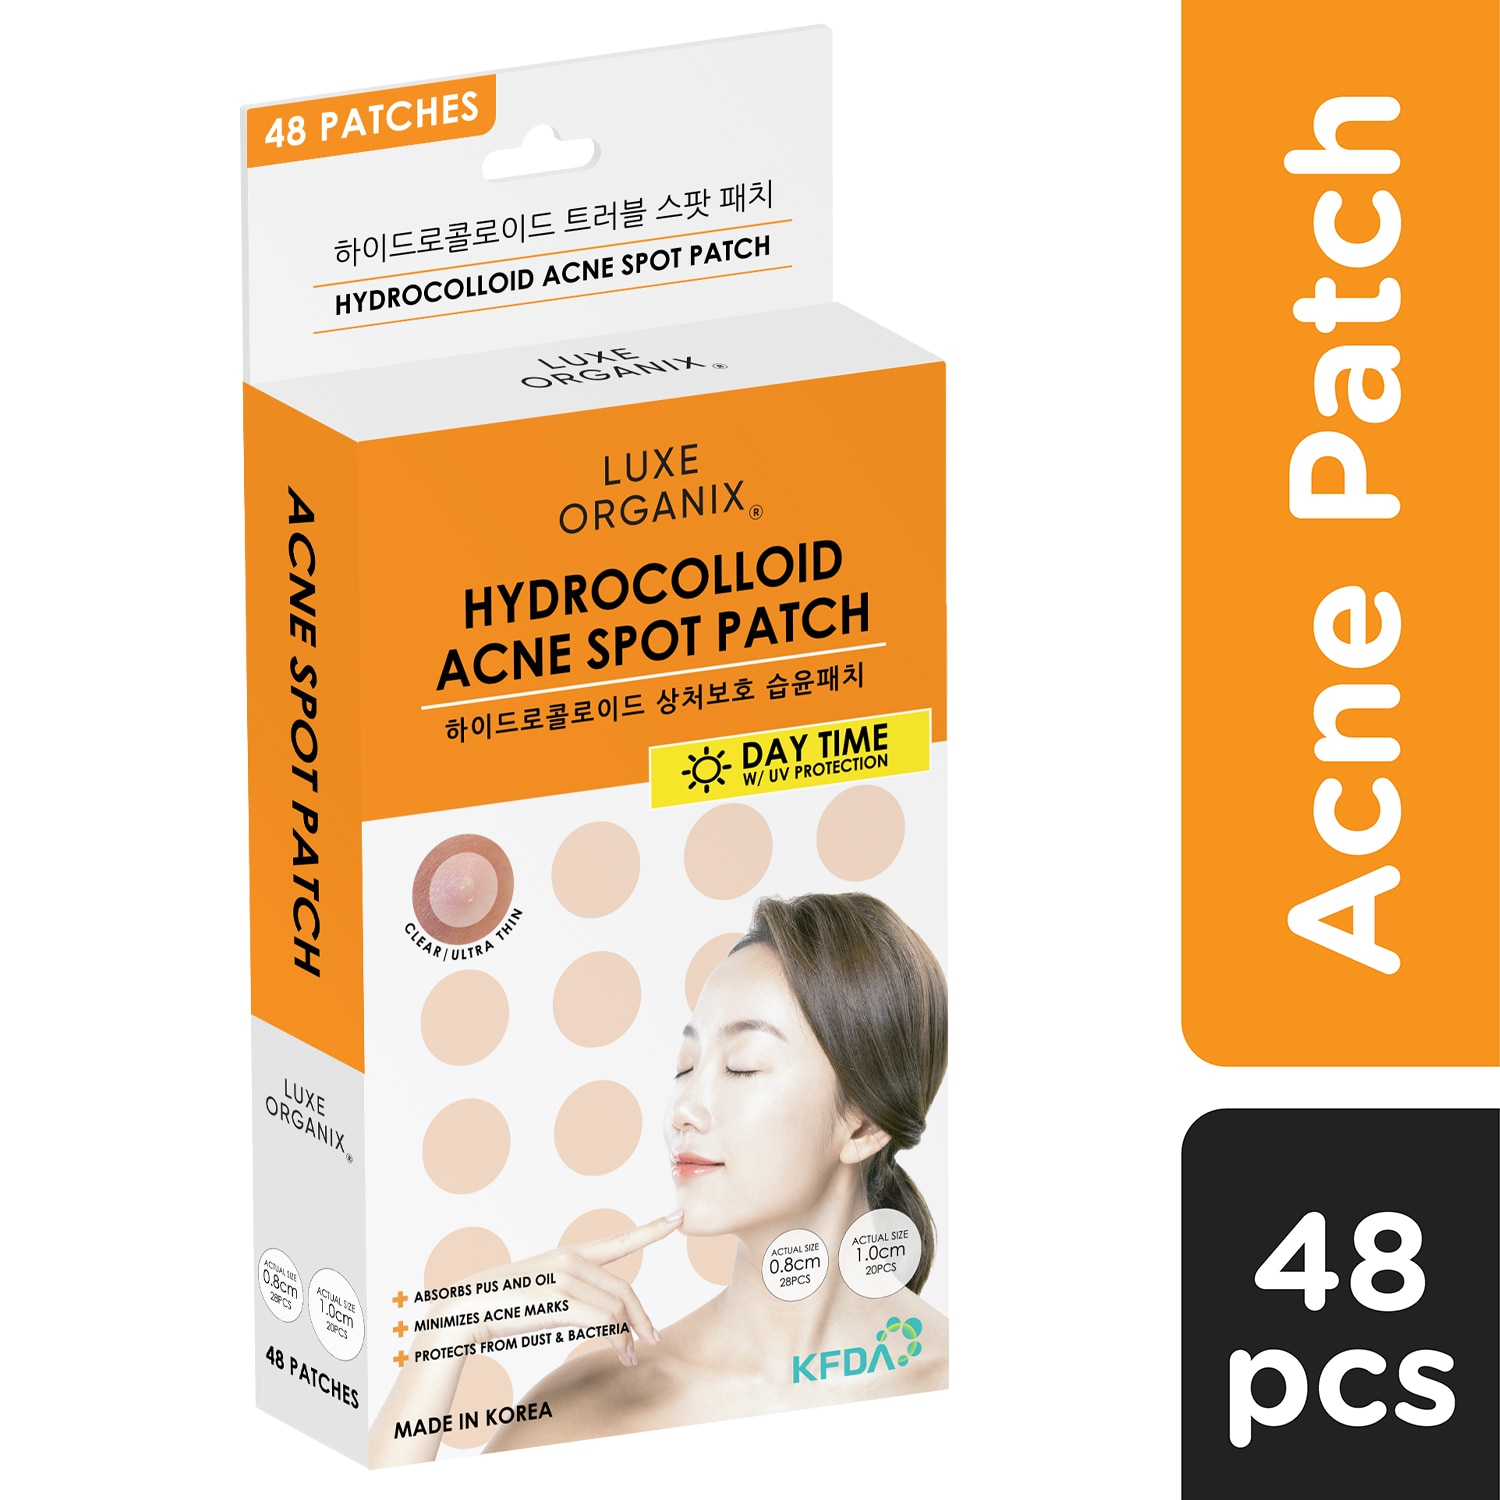 LUXE ORGANIXLuxe Organix Hydrocolloid Acne Patch Day Time 48s,Facial TreatmentClean Beauty